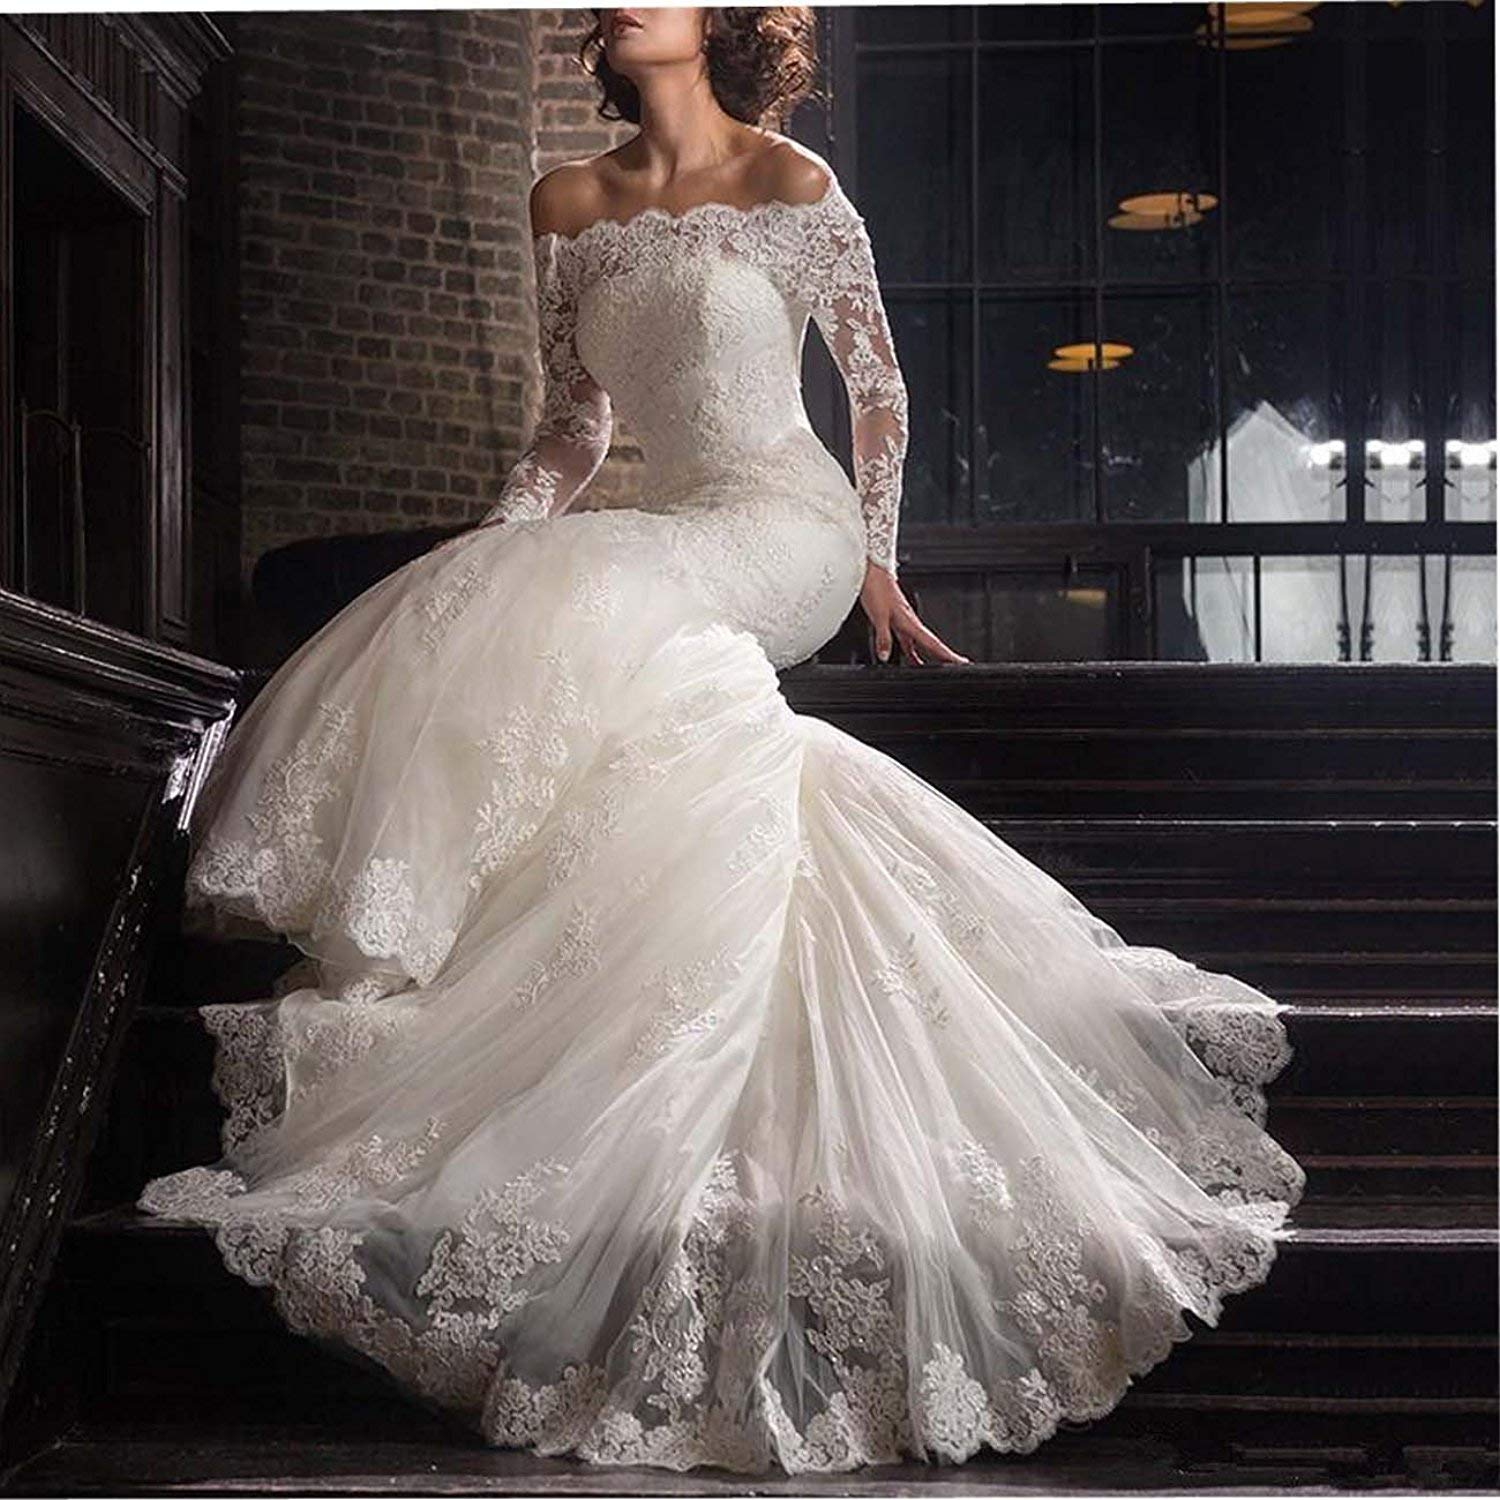 2019 Lace Mermaid Wedding Dresses Applique Beaded Long Sleeve Bridal Gowns Formal